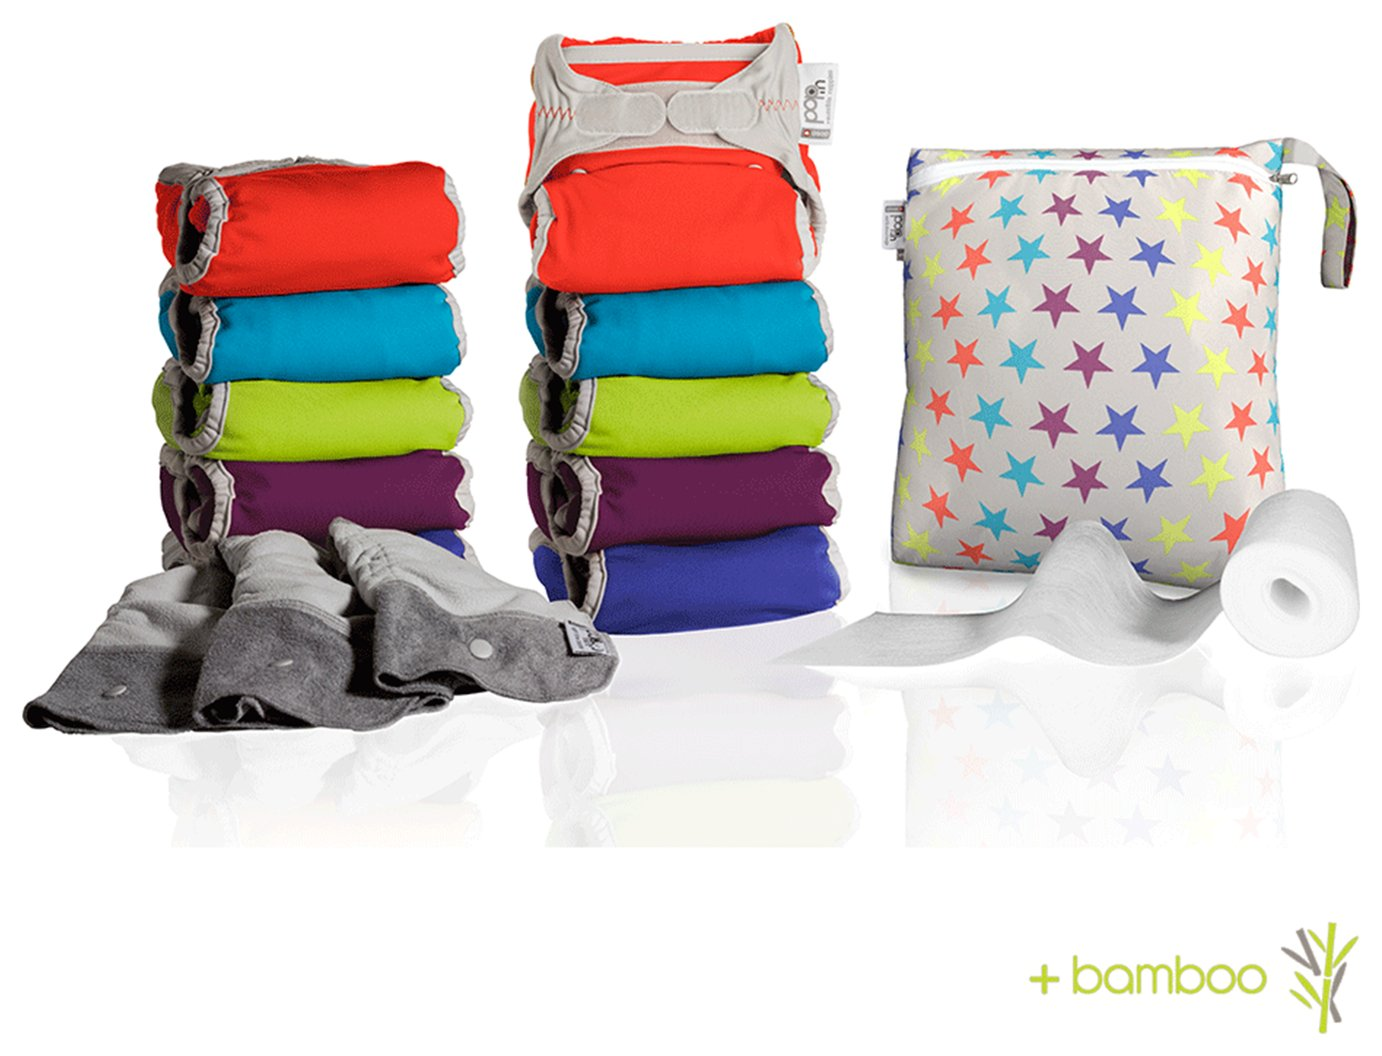 Pop-in Middle Box Brights Baby Nappies